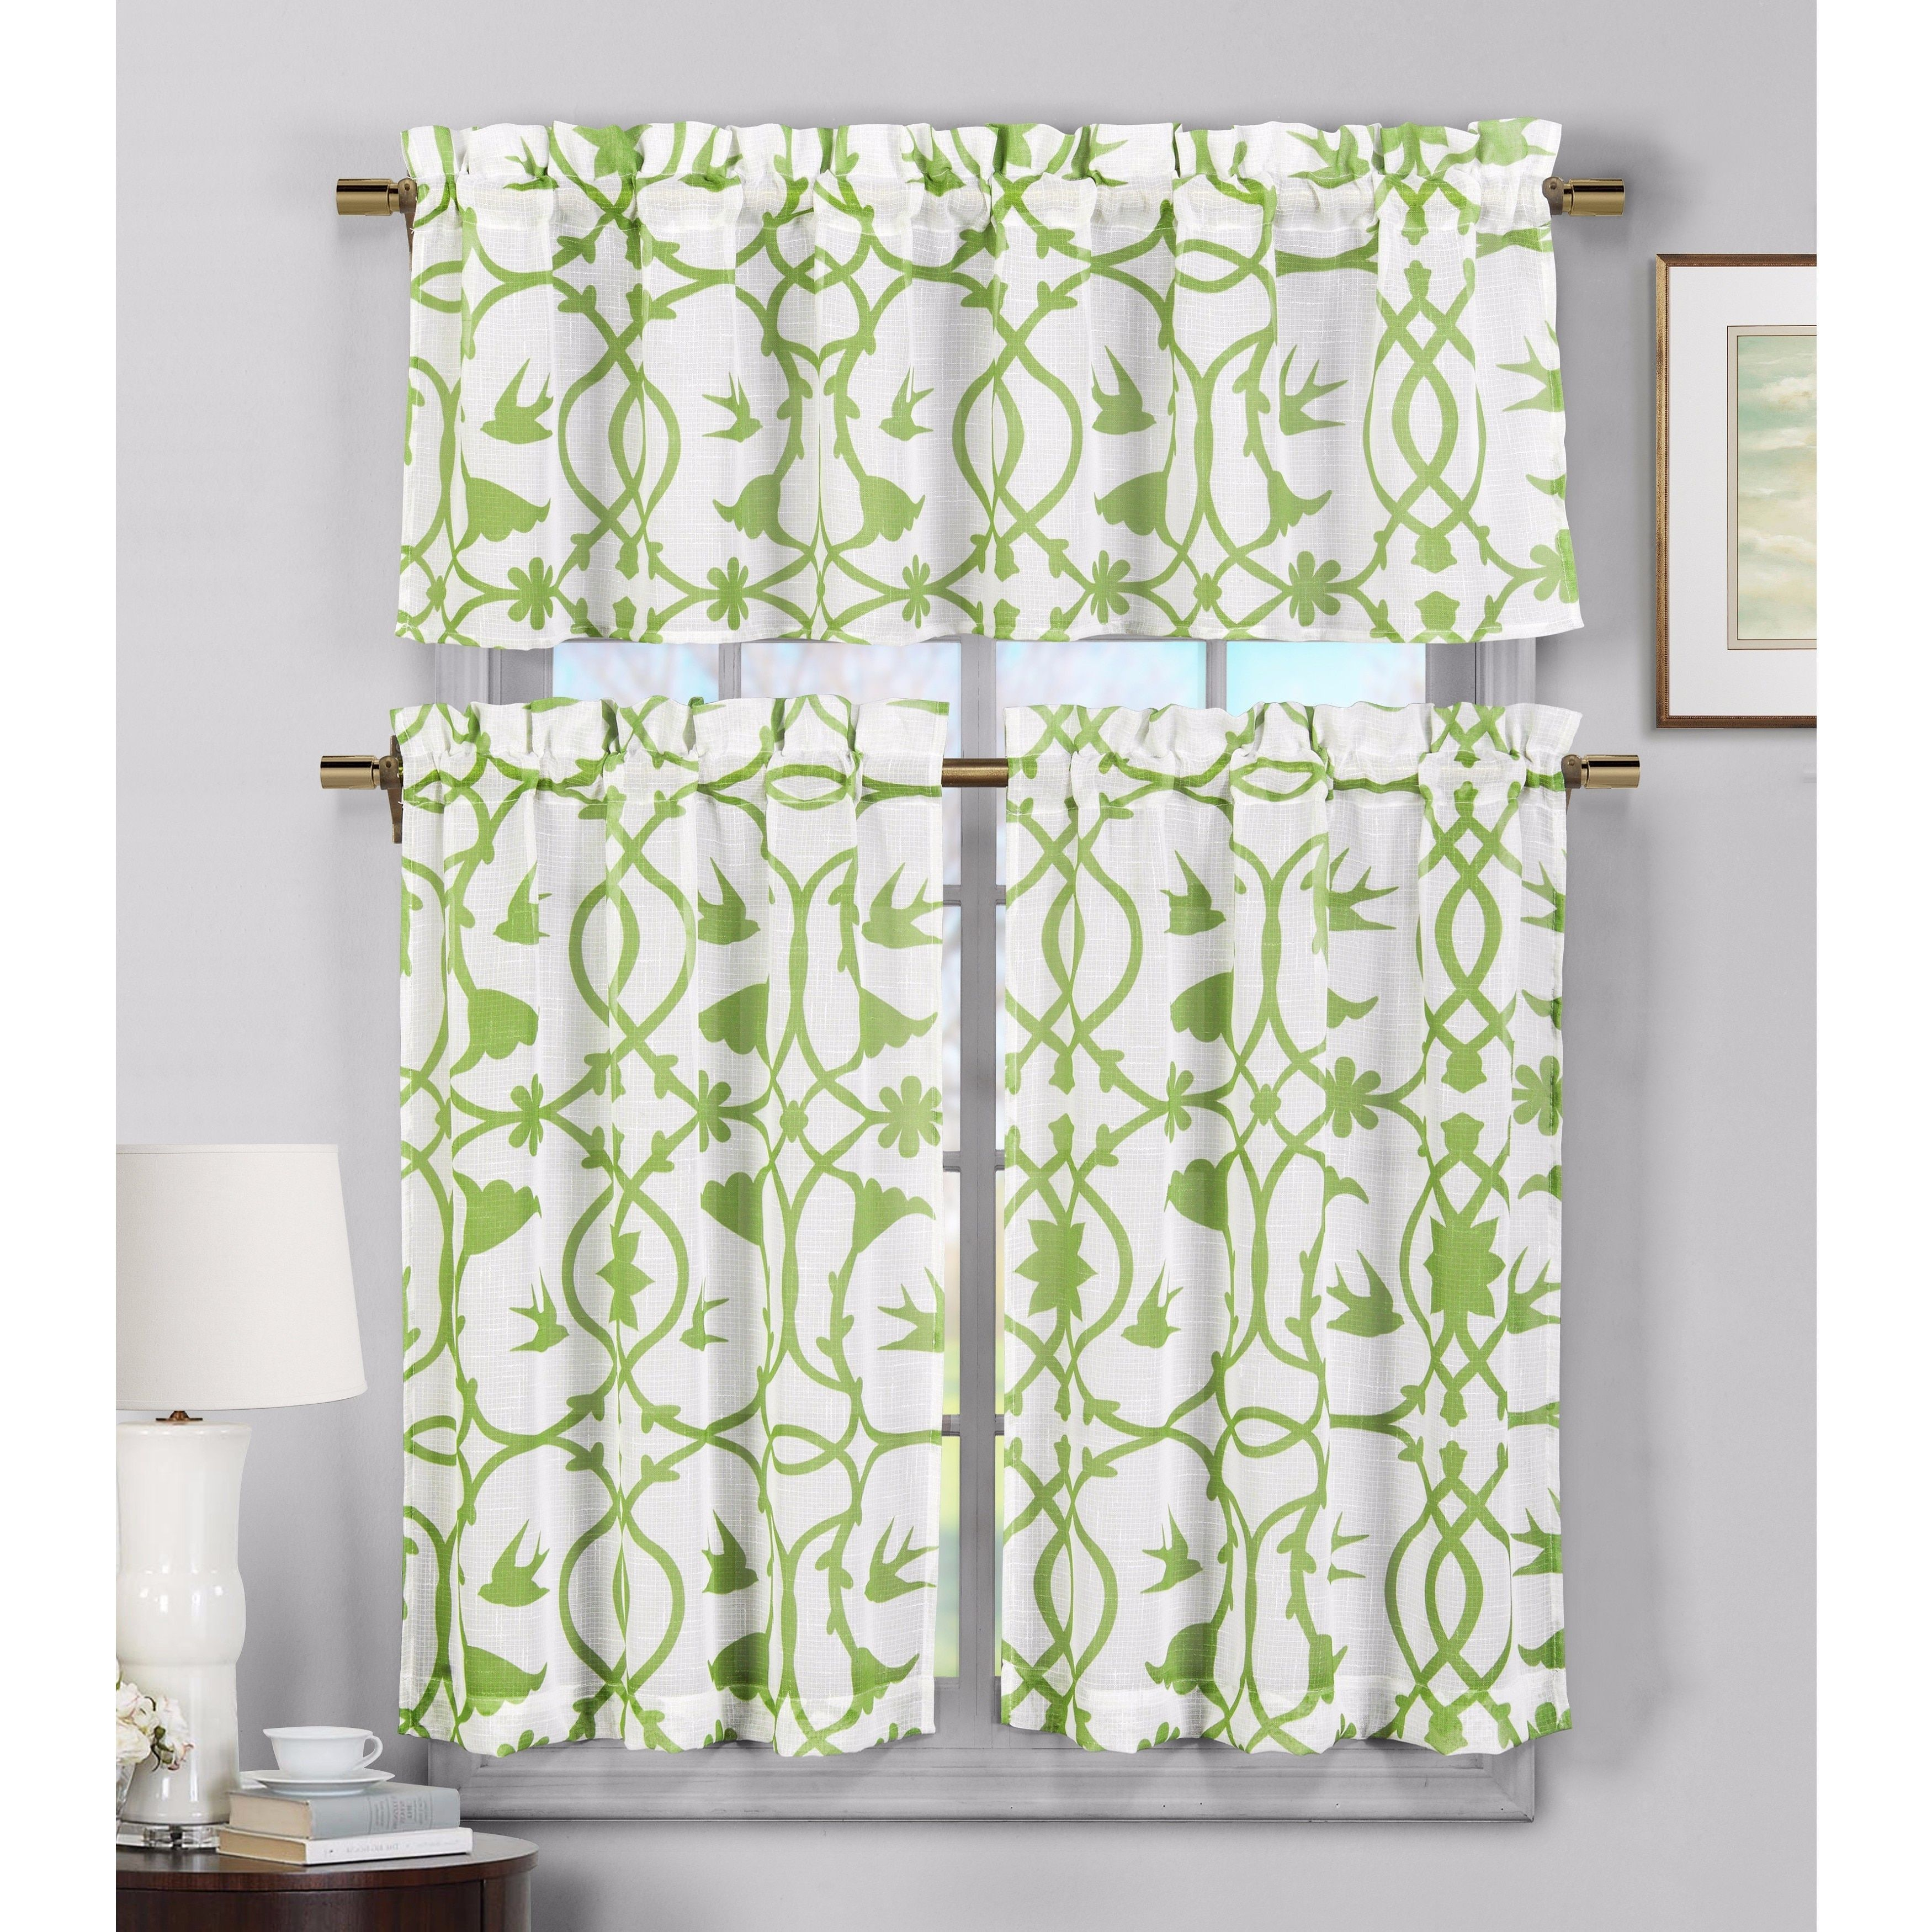 Duck river udawnu faux linen kitchen curtain green polyester